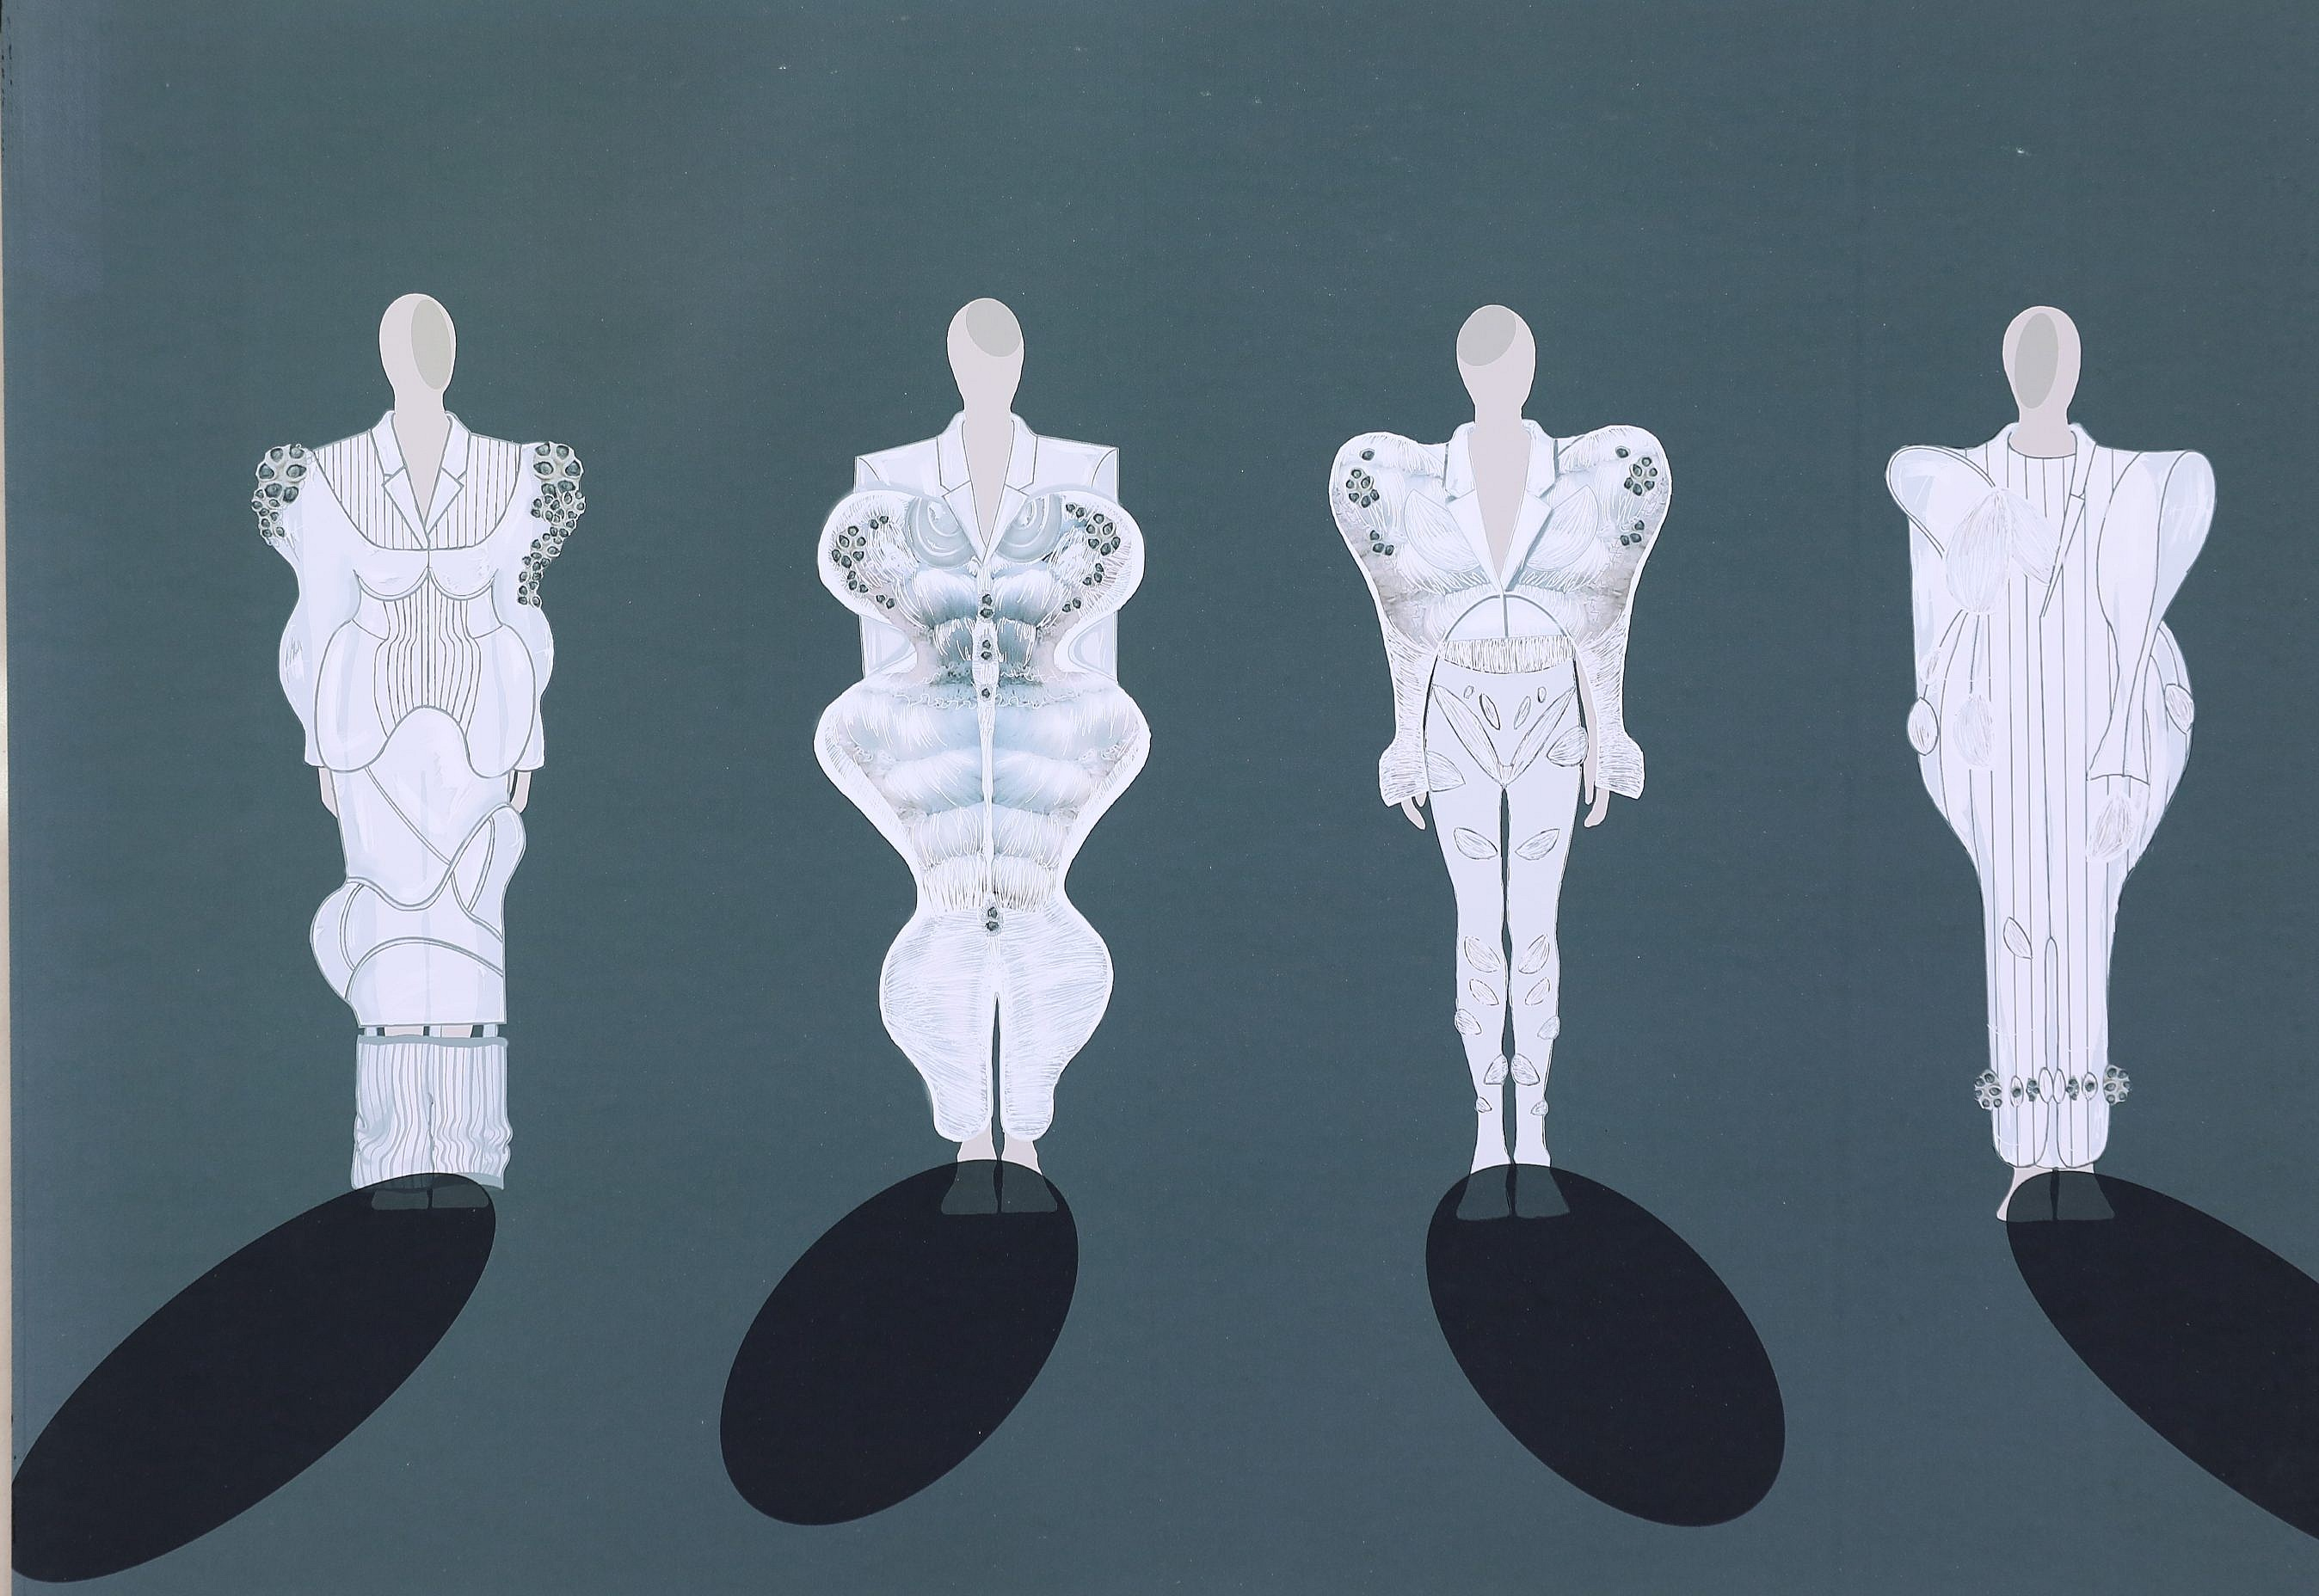 Chinese leather design competition: Wu Jingling's androgynous alien submission out of this world